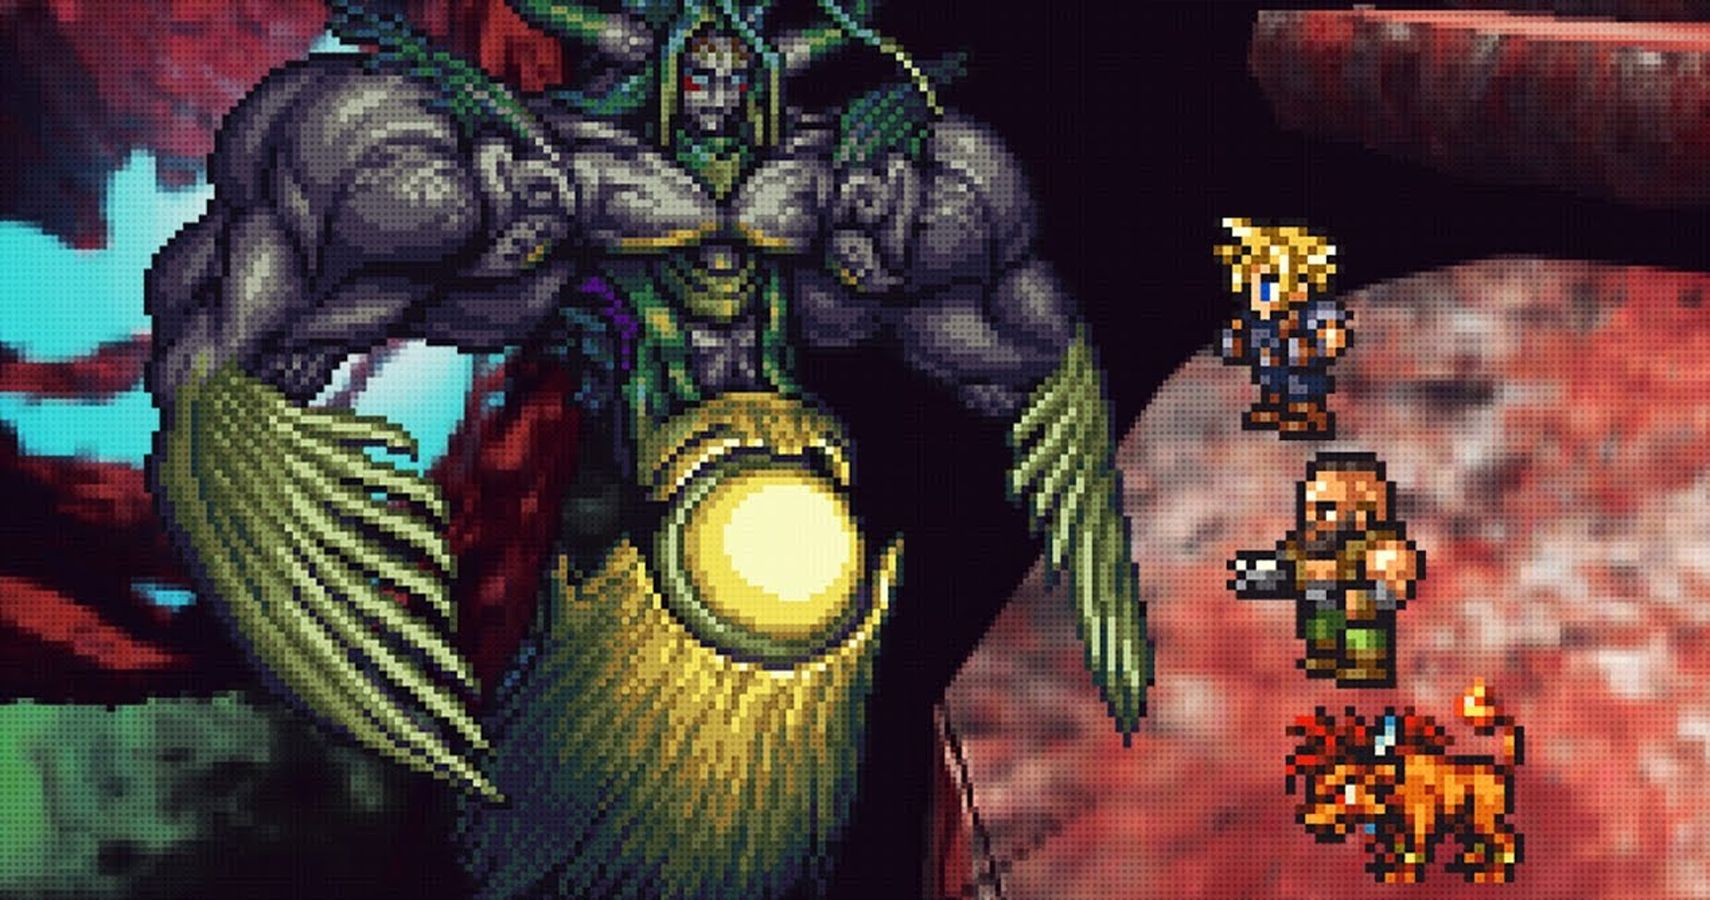 20 Final Fantasy Titles That Were Almost Totally Different Games